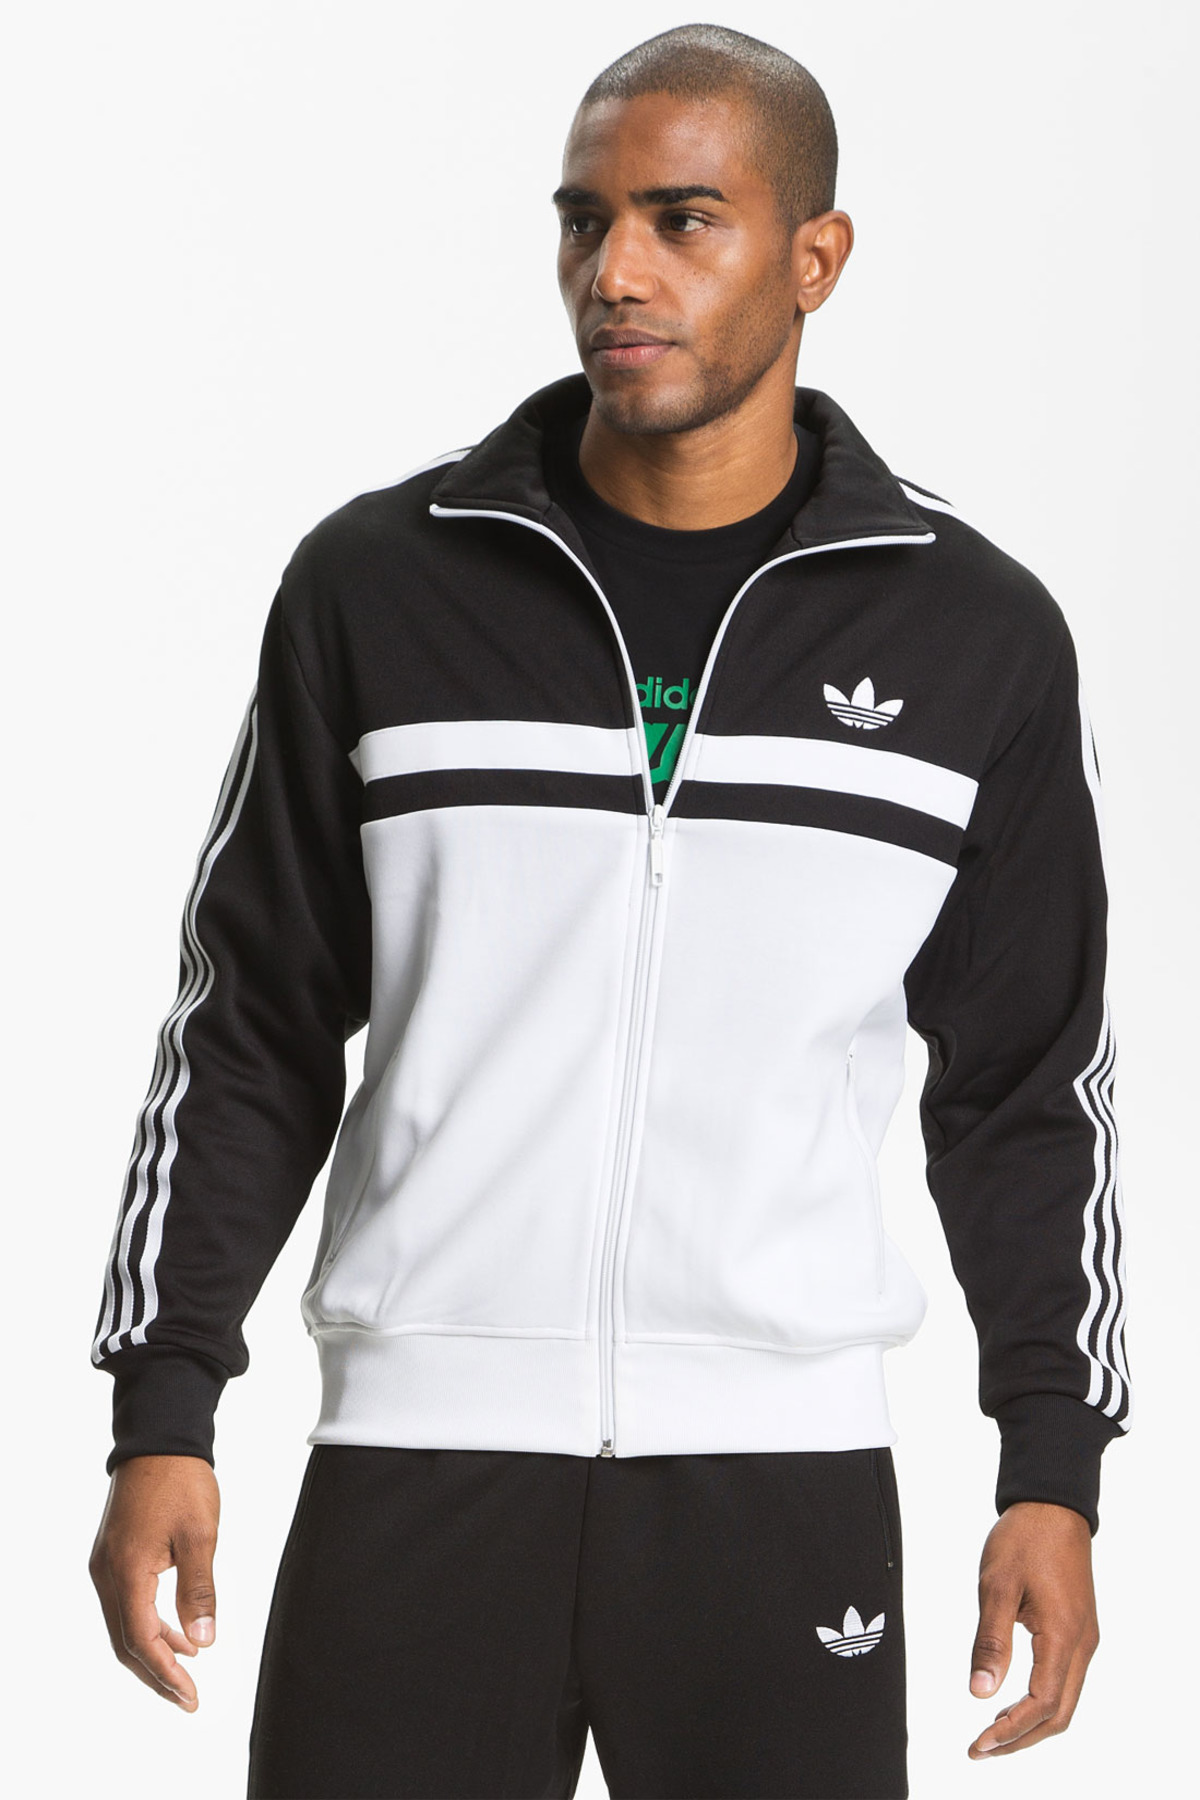 Adidas Track Jacket – Designed to Produce Maximum Convenience!